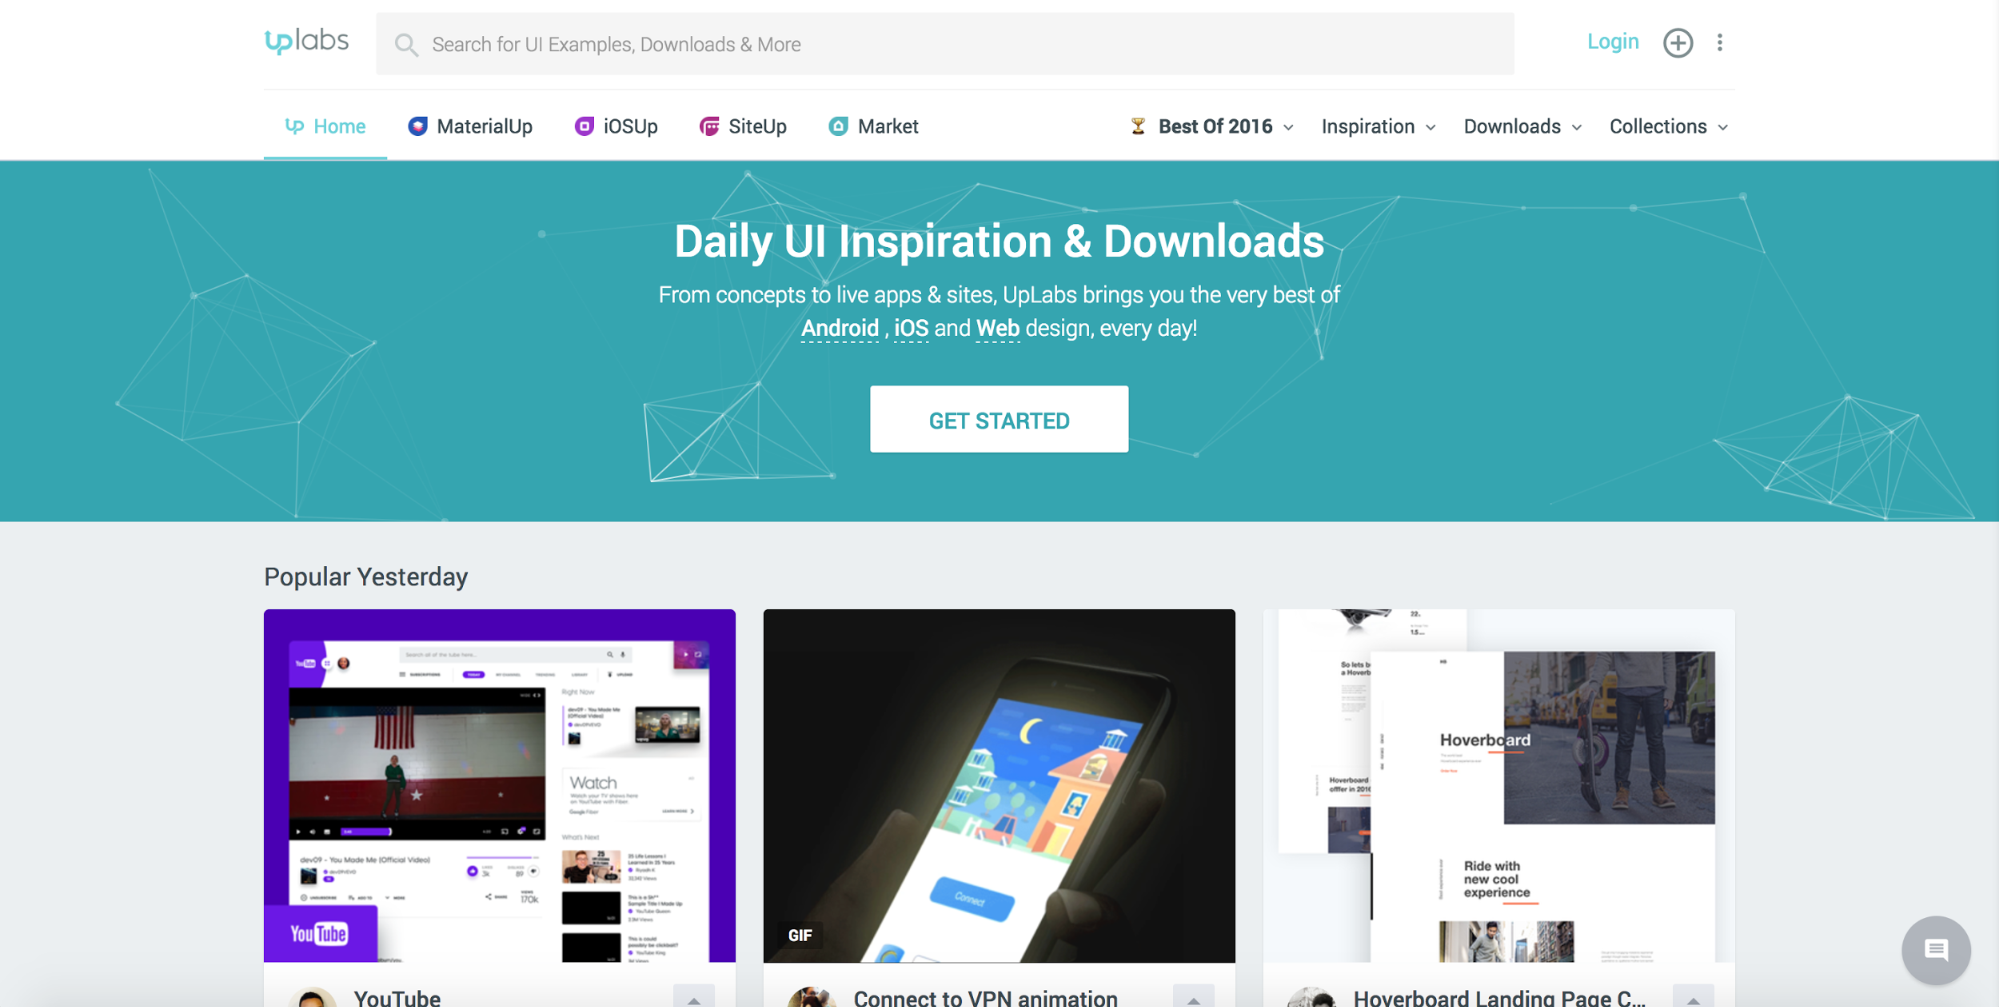 22 web design inspiration resources you\'ll love | Webflow Blog